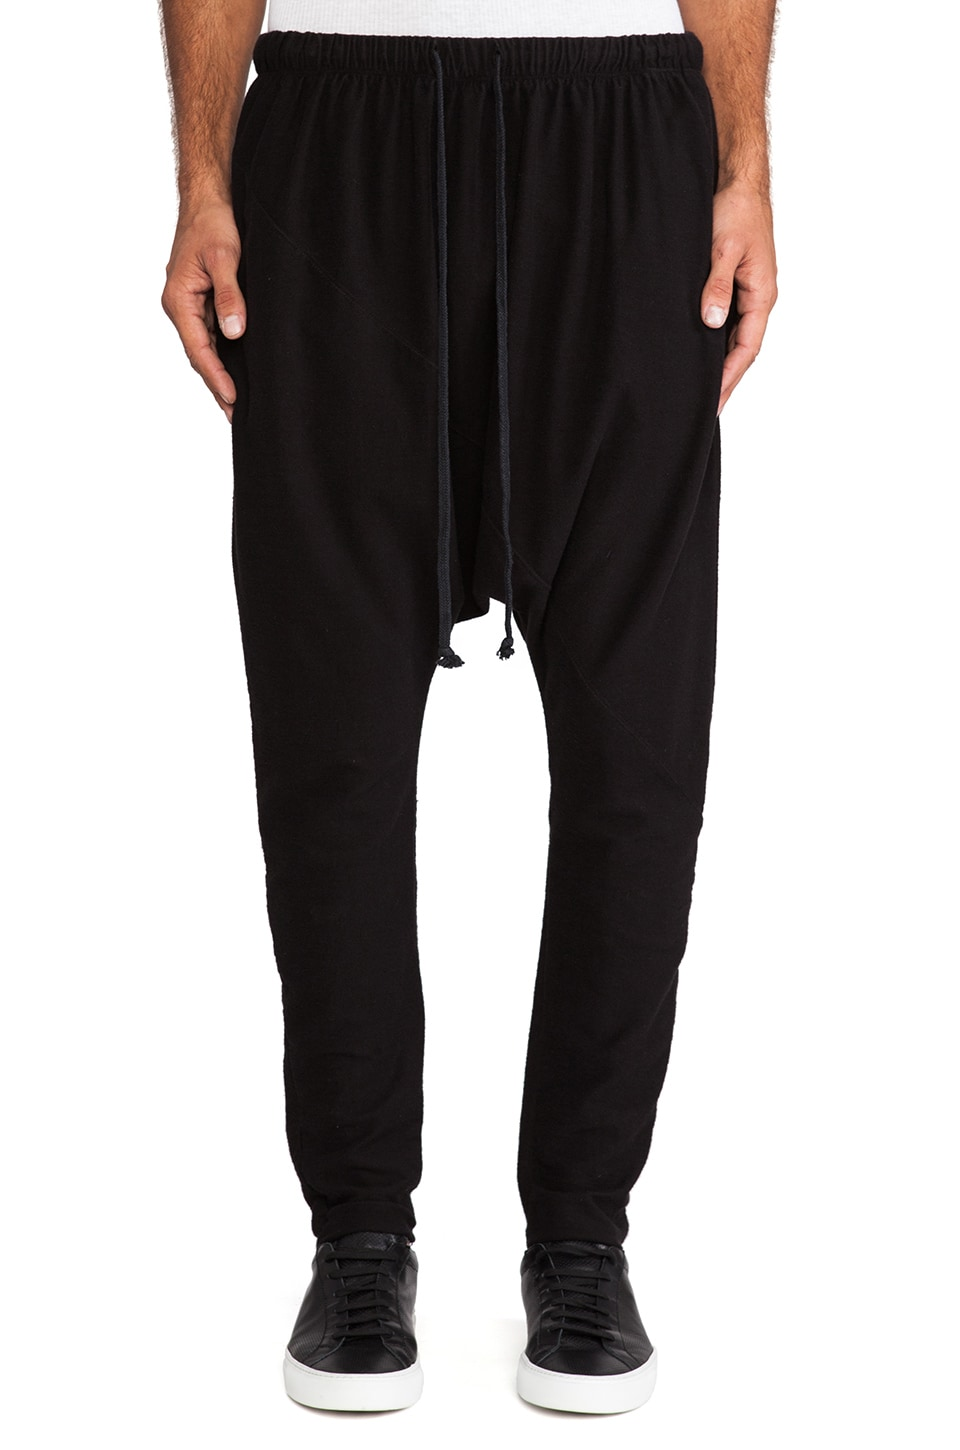 Daniel Patrick Trail Skinny Sweatpant in Black